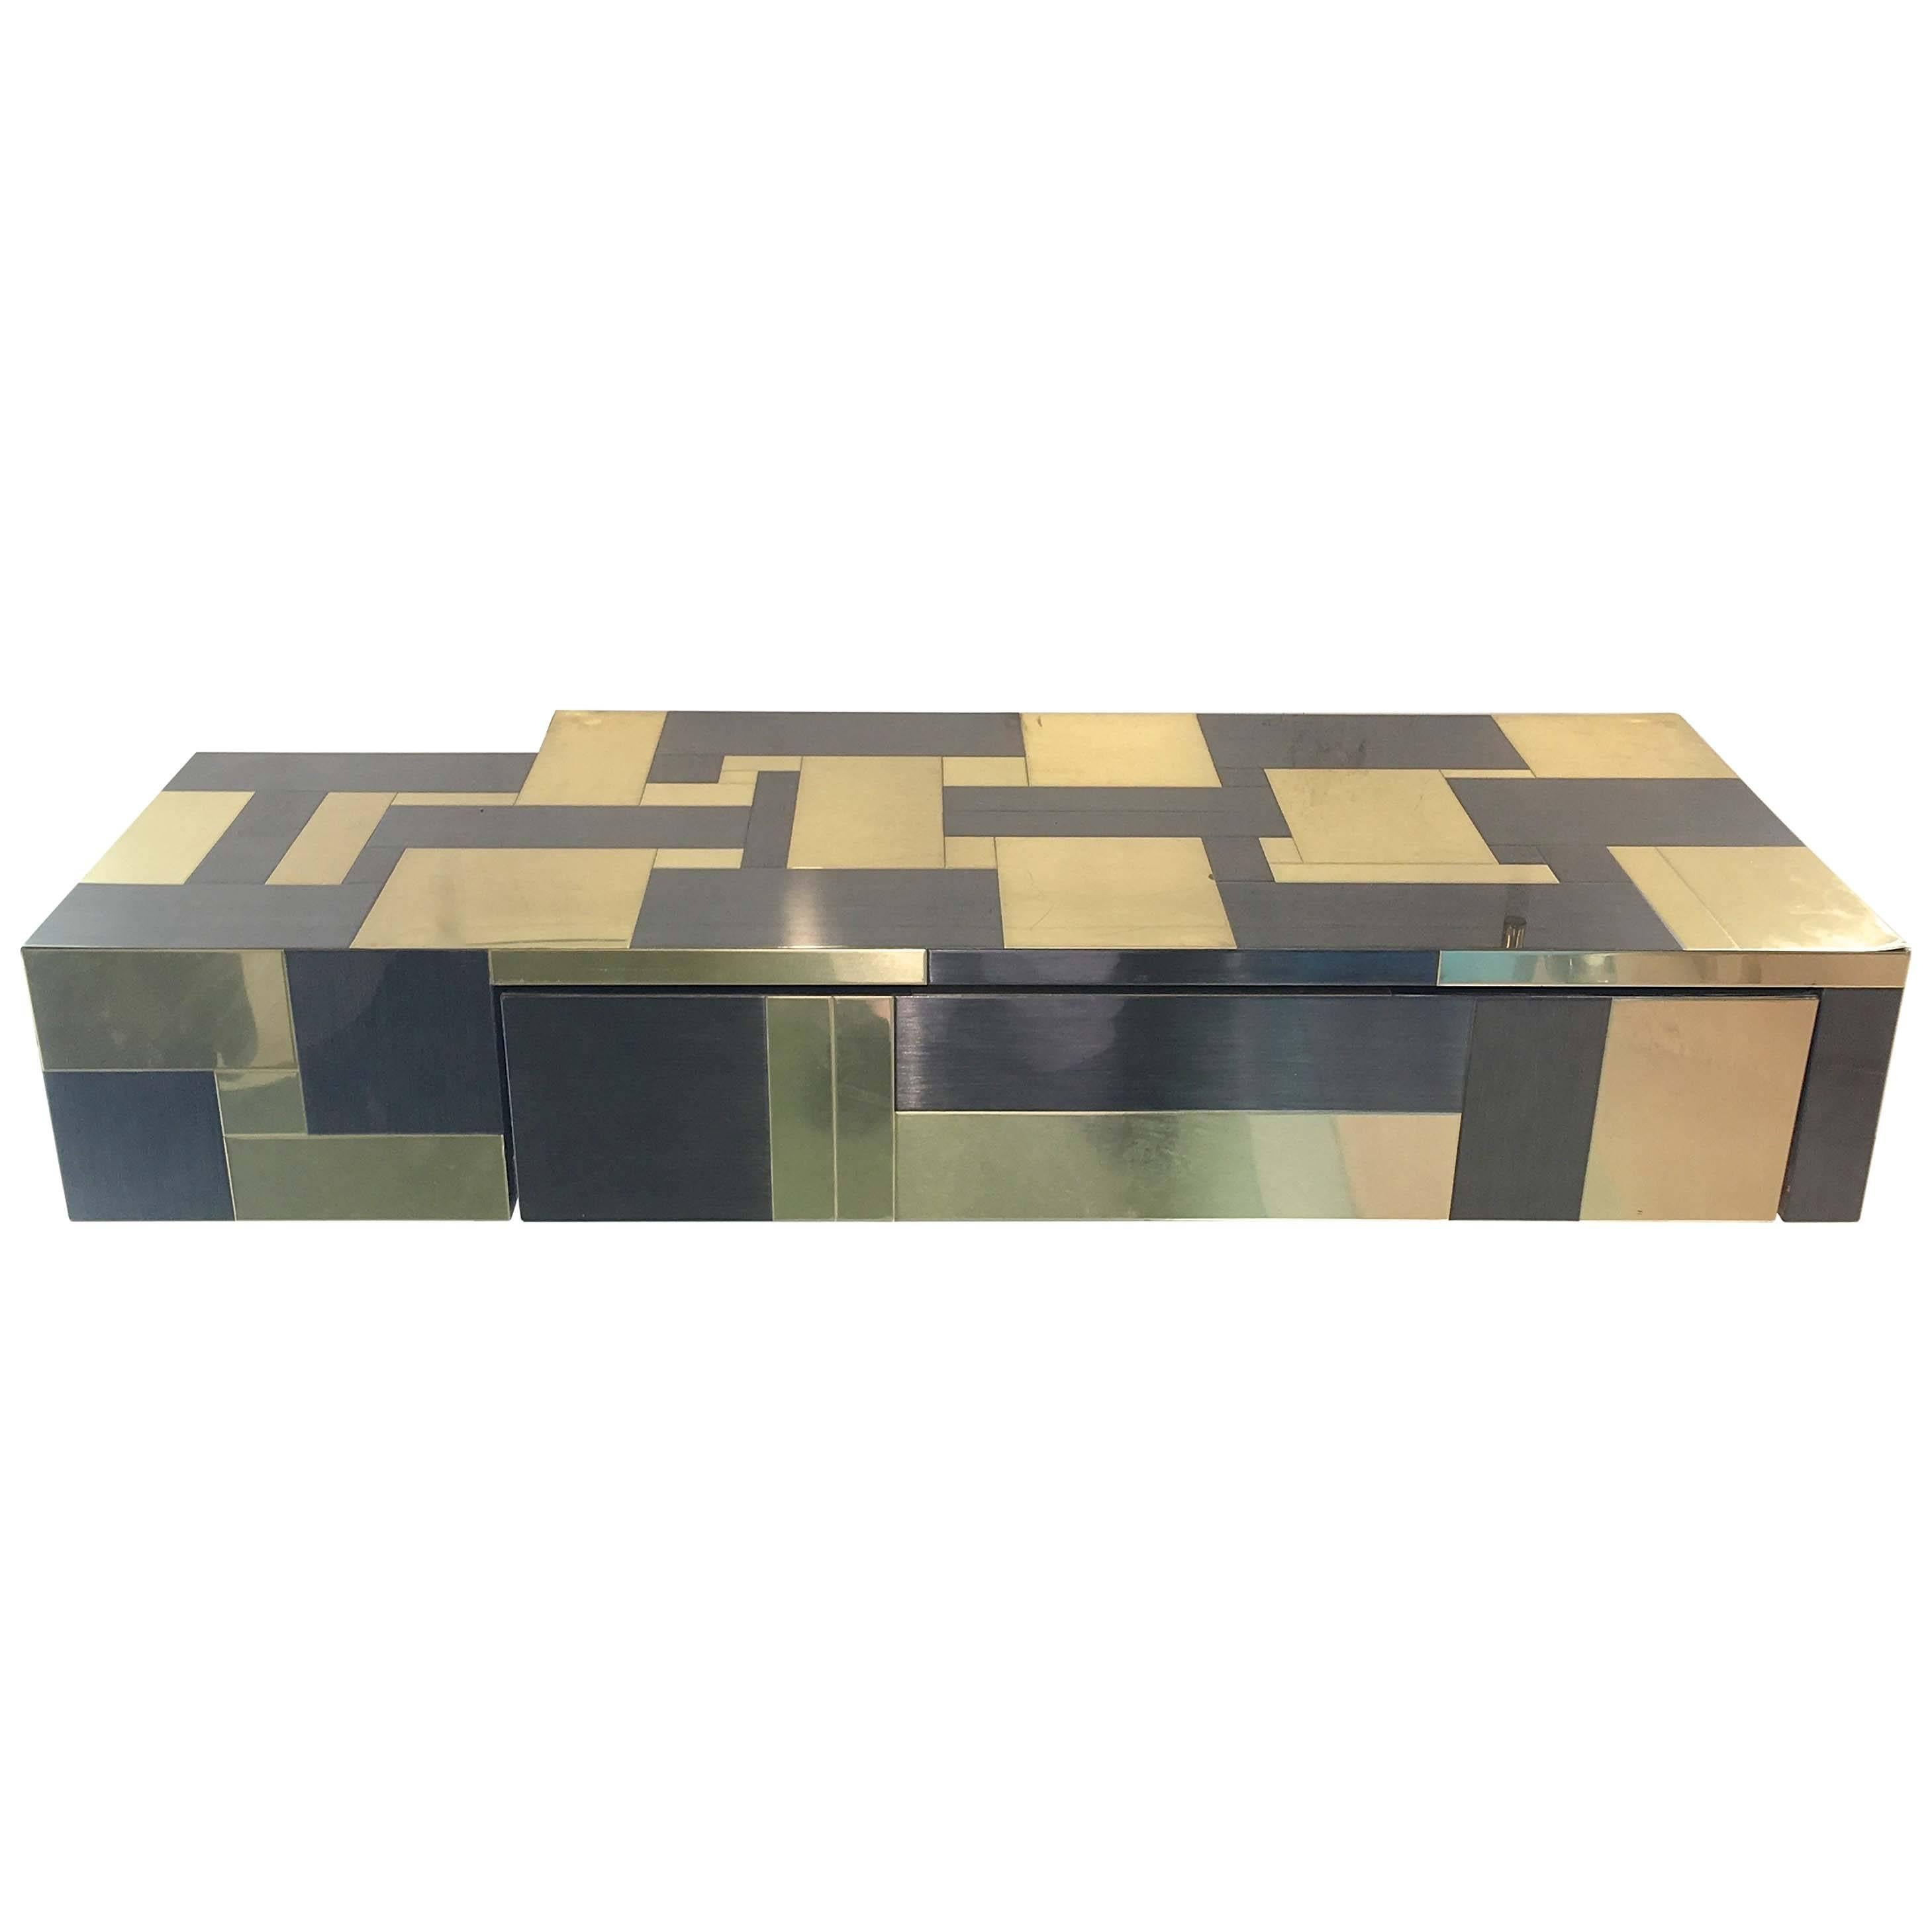 Floating console shelf Cabinet Paul Evans Brass And Gunmetal Floating Console Jimmygirlco Patchwork Metal Floating Console Shelf By Paul Evans At 1stdibs